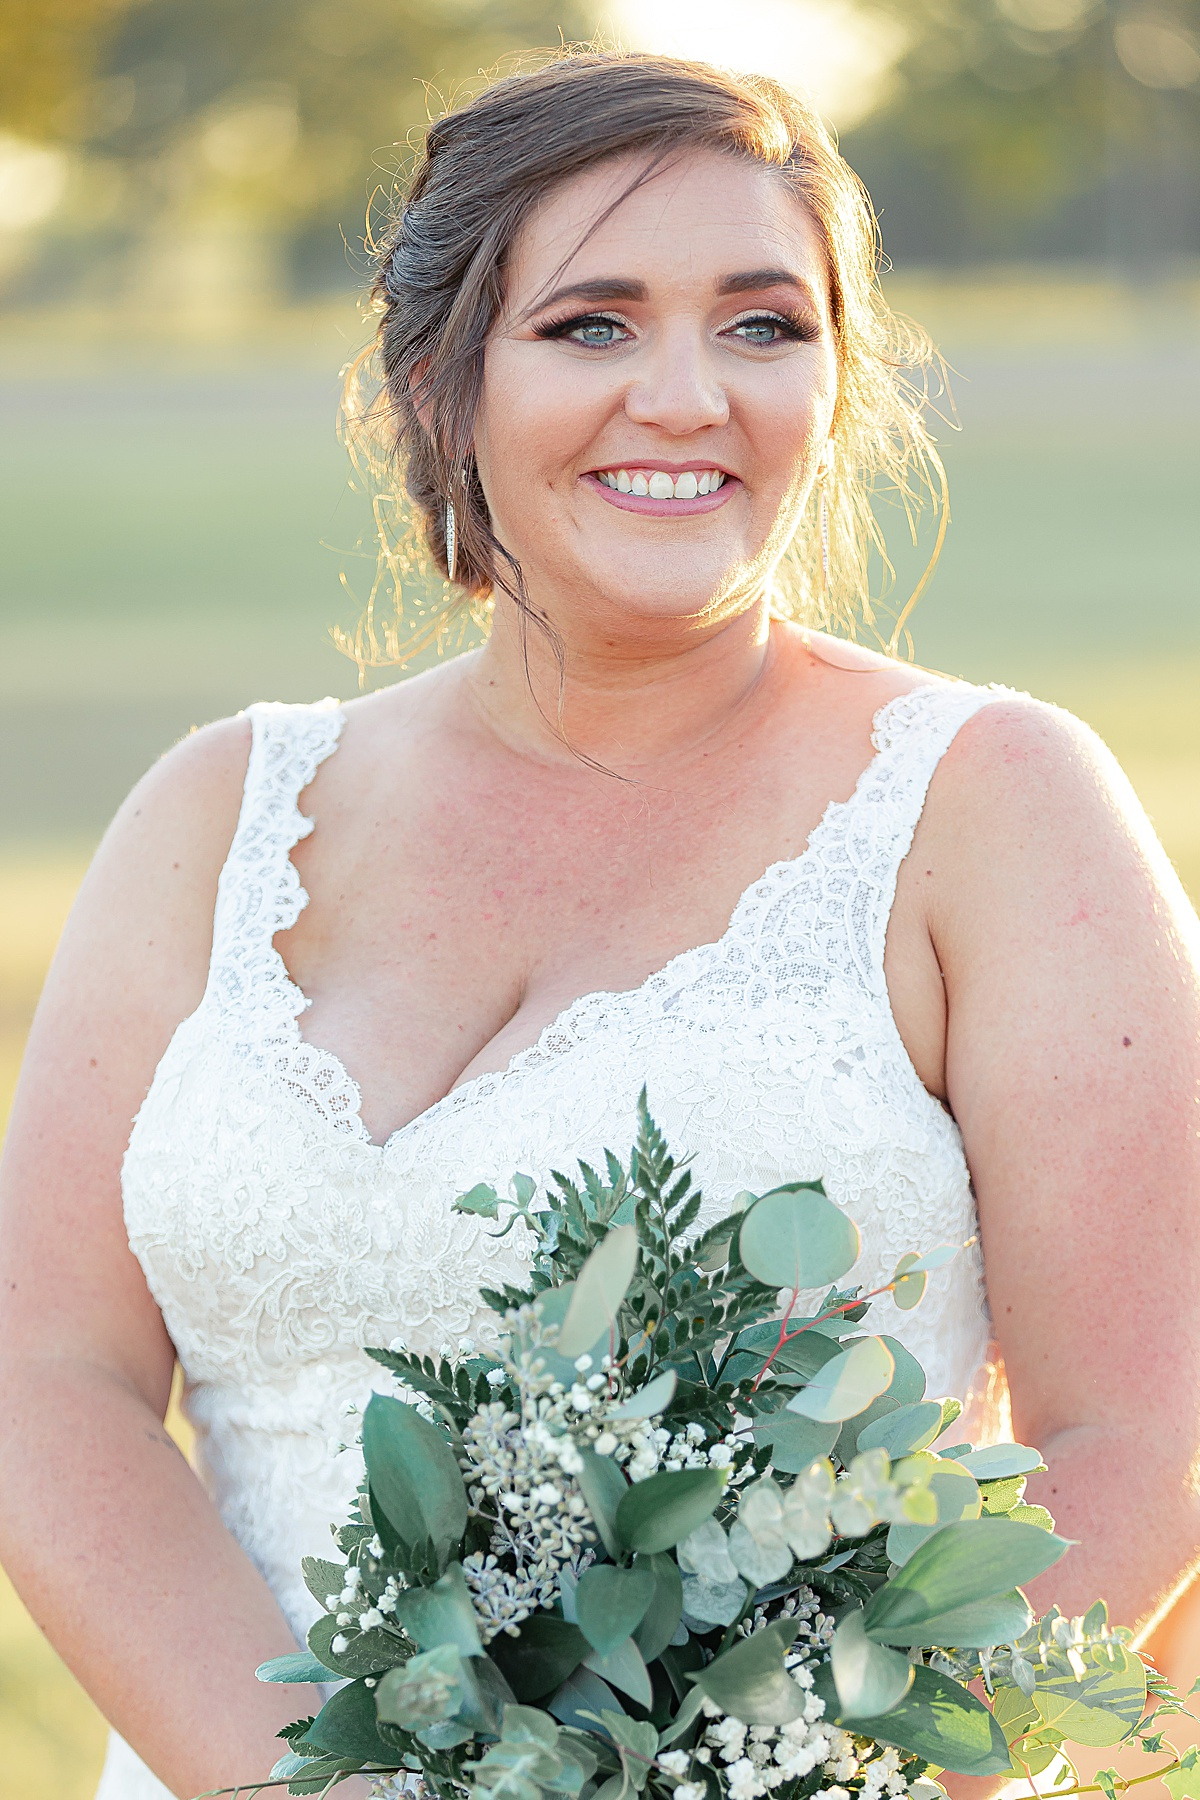 Rustic-Texas-Wedding-Hollow-Creek-Ranch-Carly-Barton-Photography_0085.jpg